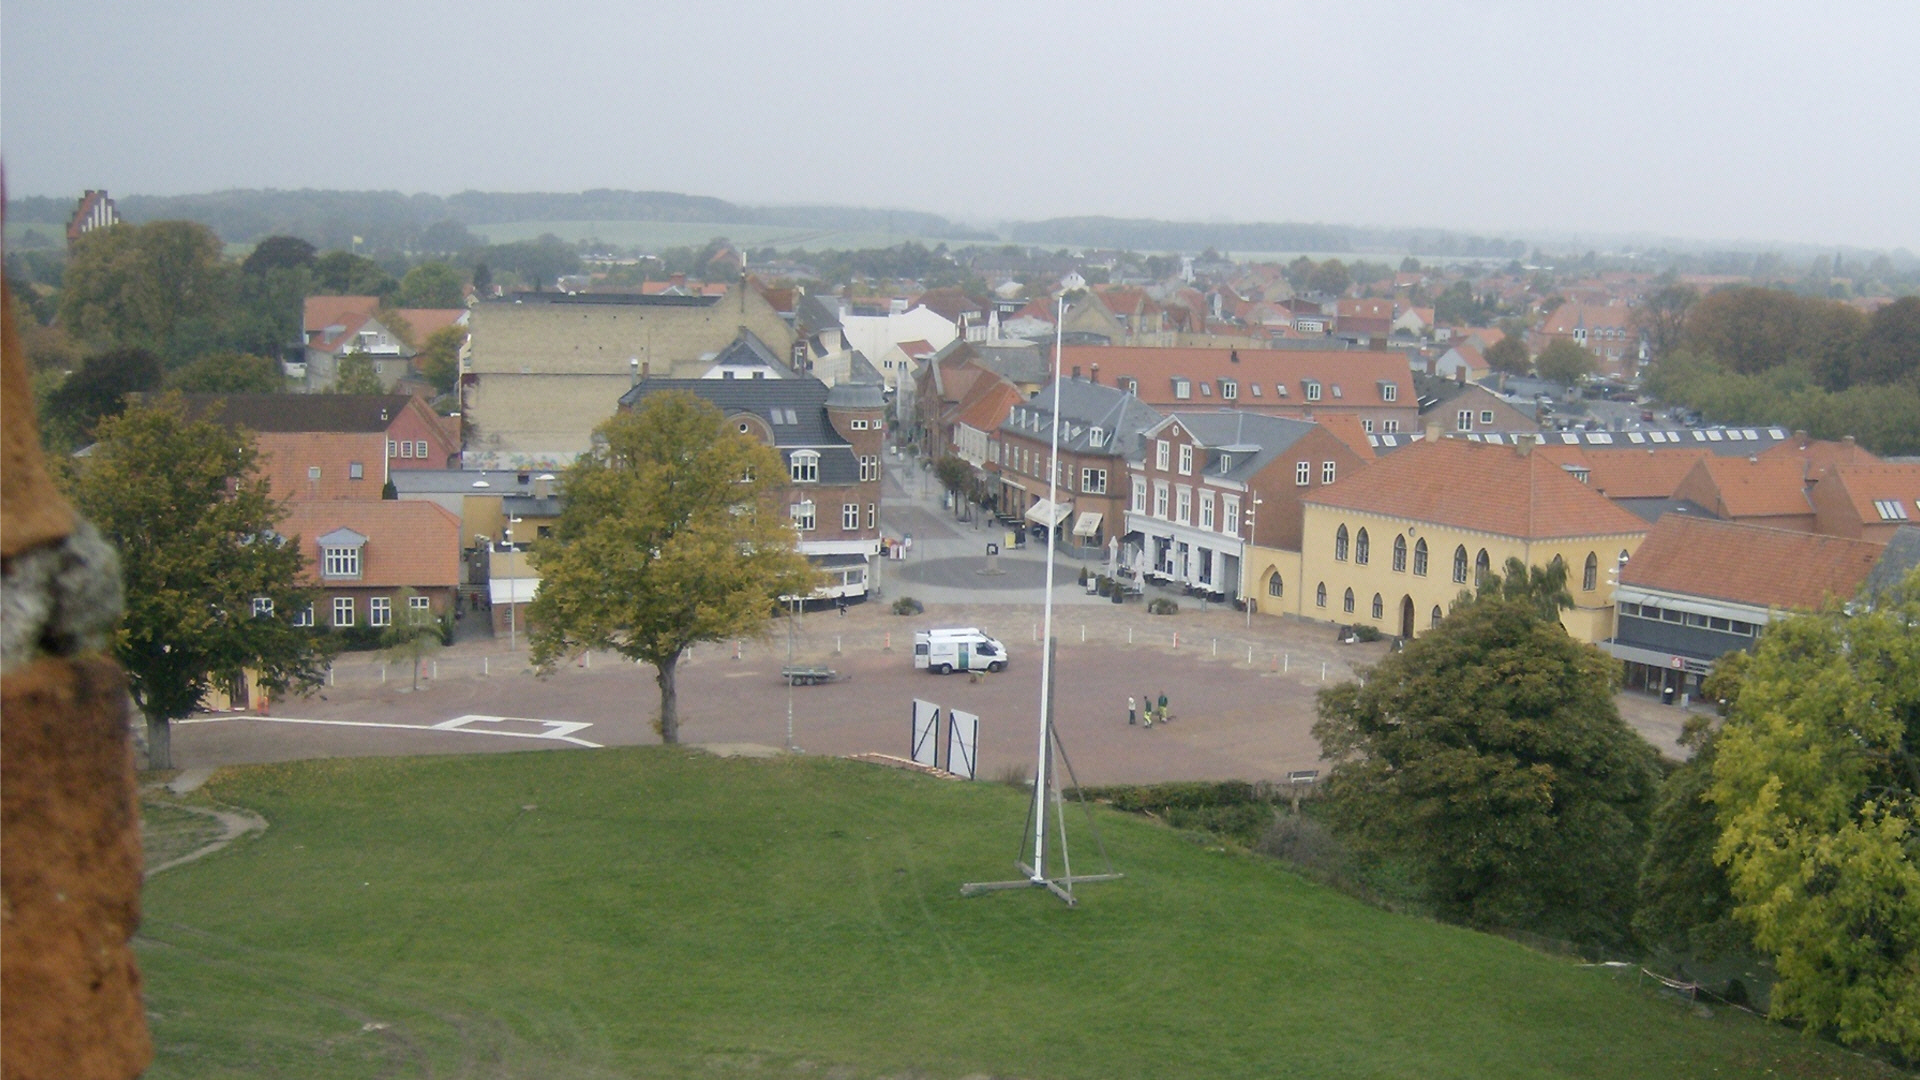 Vordingborg. Region Zealand. Denmark. Copyright © InterConsult21